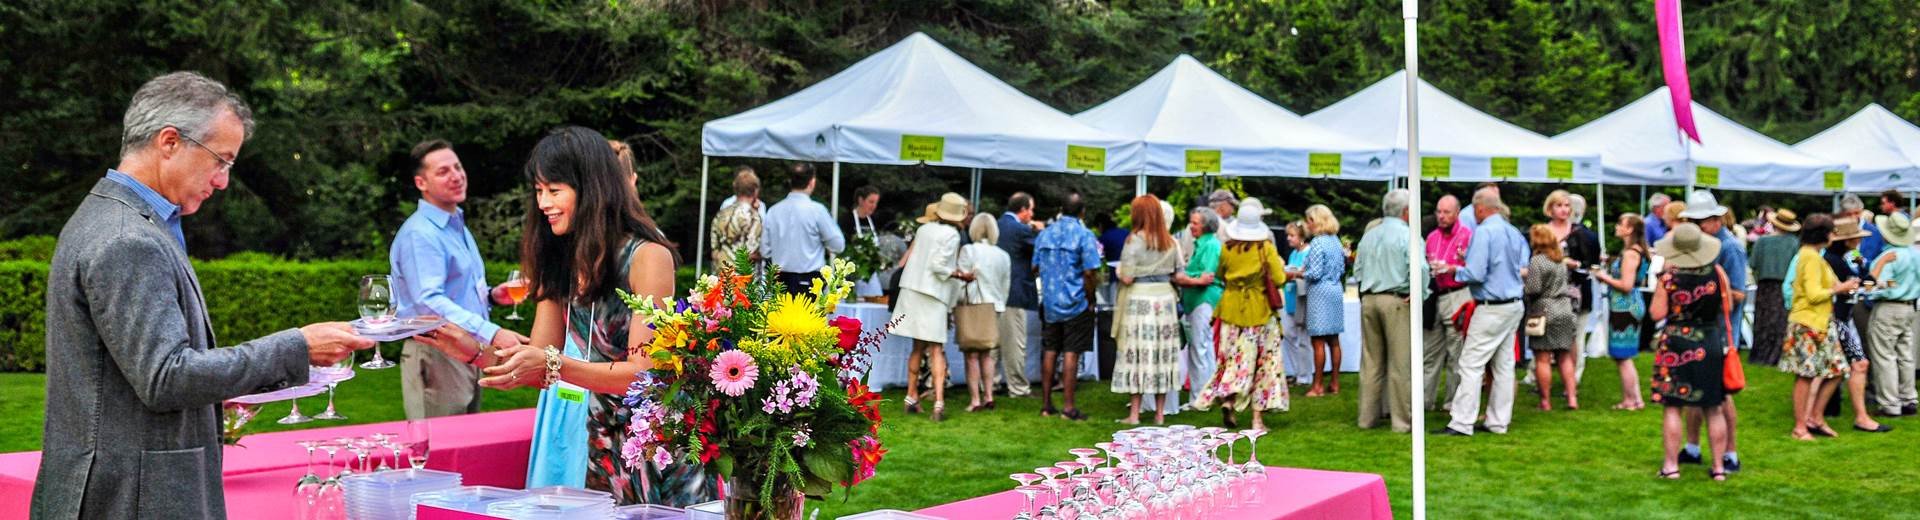 Summer Company Party Ideas  Summer Celebrations and pany Summer Party Ideas